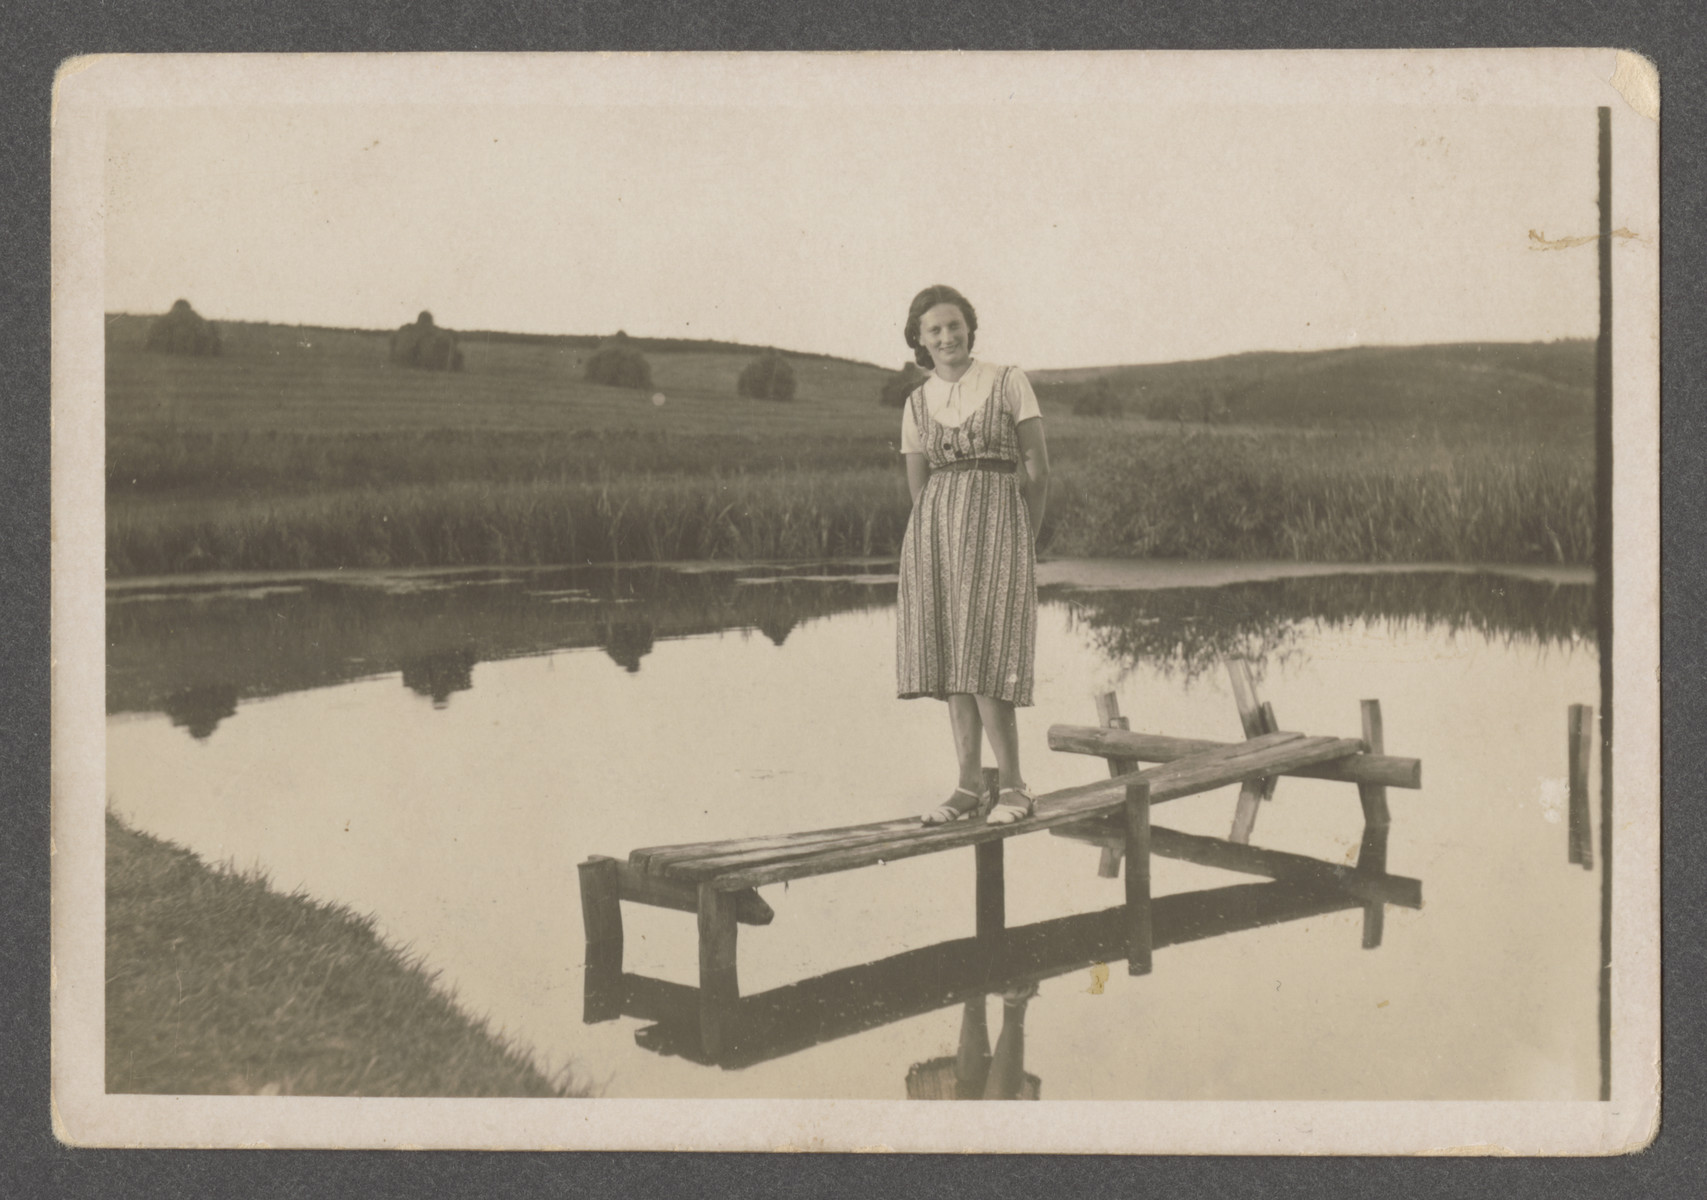 Fania Scwarczman stands on a small wooden structure on a river in prewar Aleksandria